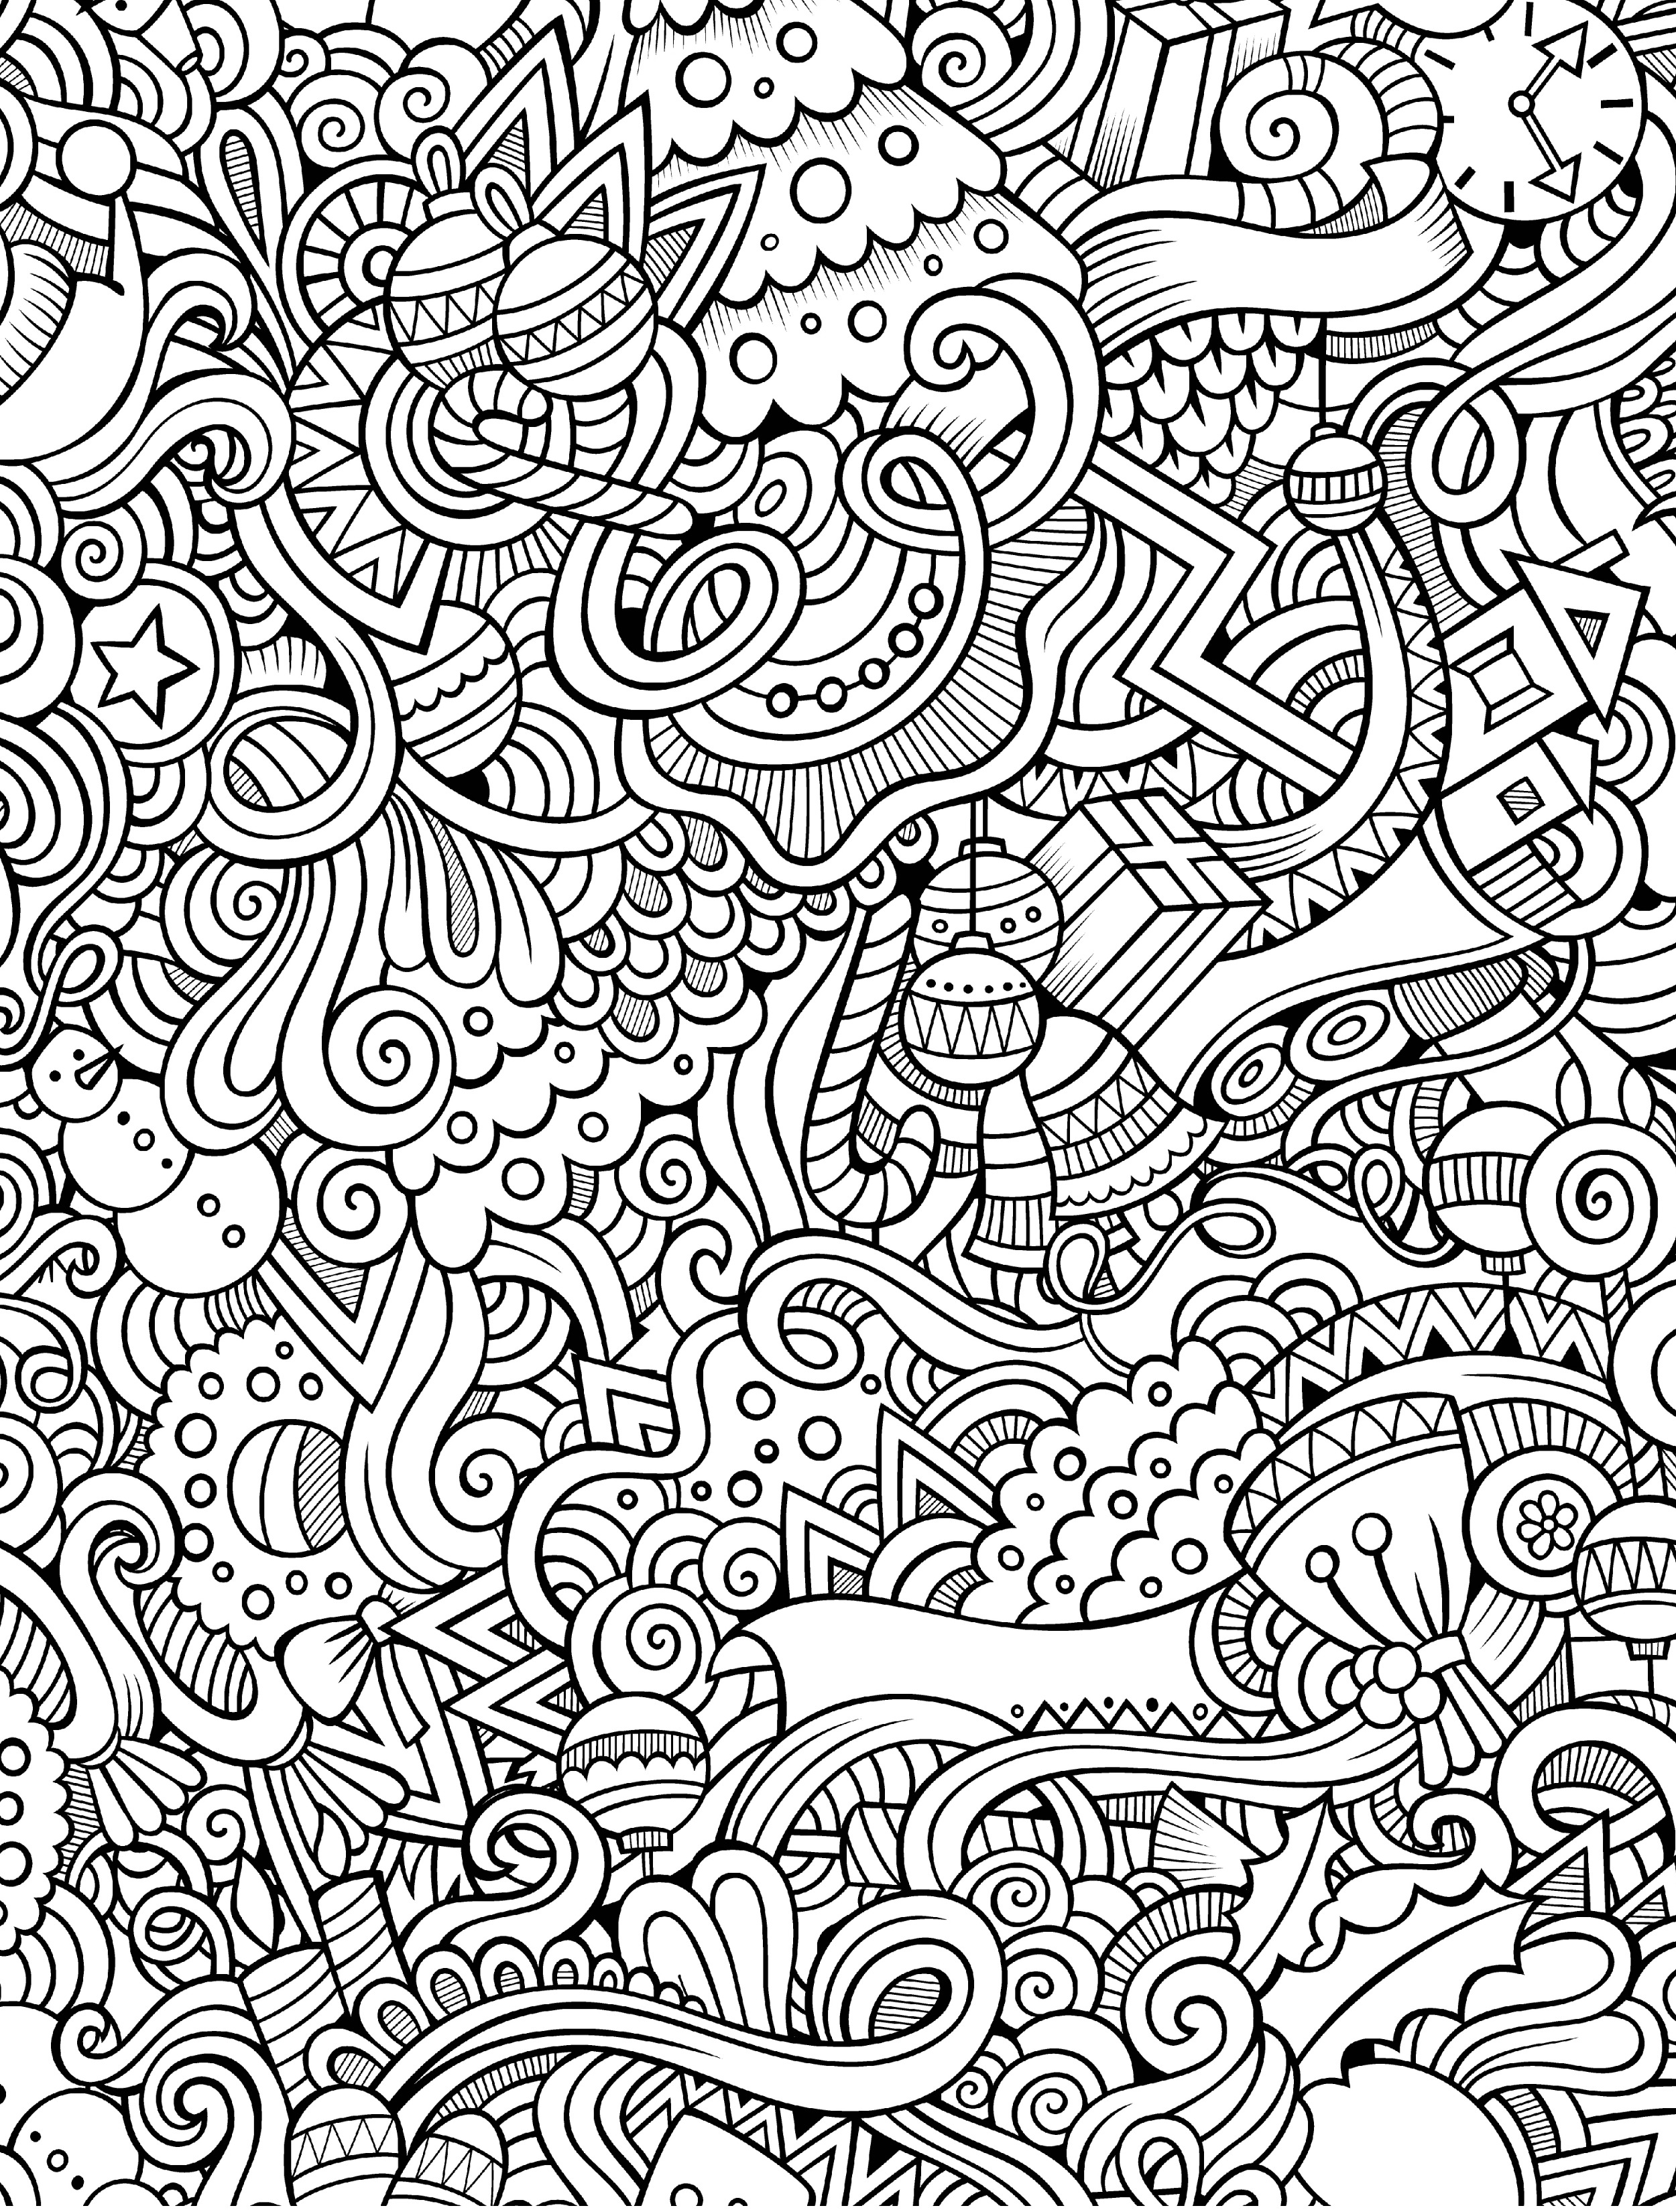 Christmas Coloring Sheets For Adults With 10 Free Printable Holiday Adult Pages